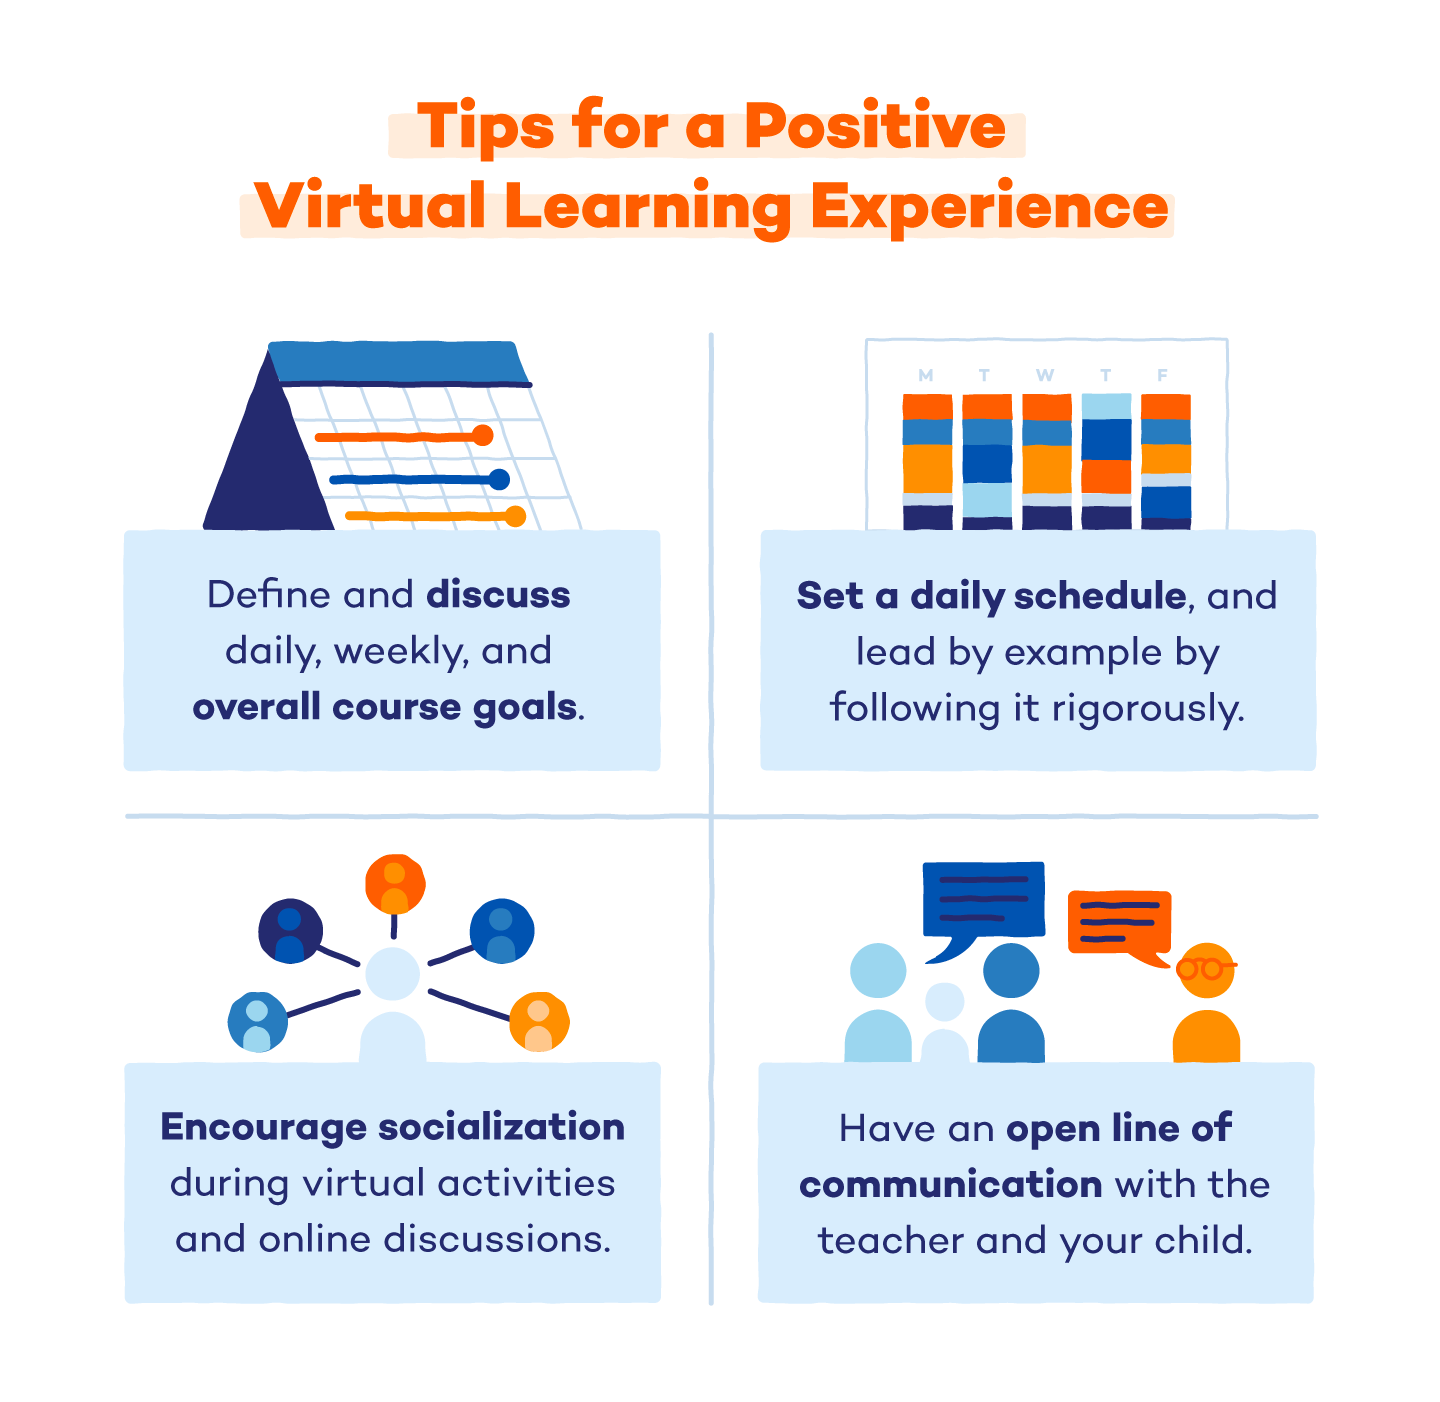 Tips-for-a-positive-virtual-learning-experience